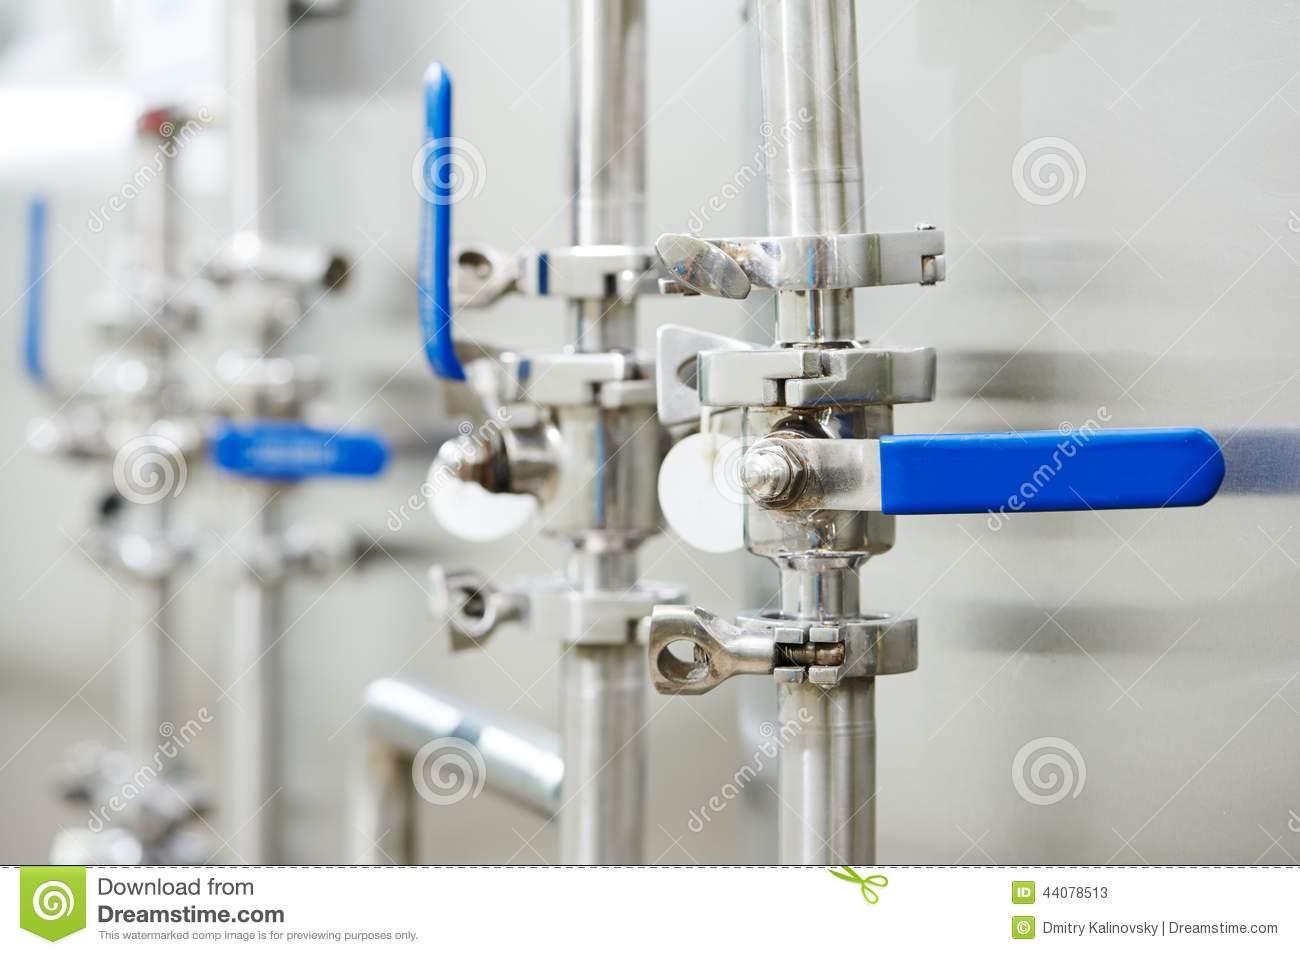 Pharmaceutical water preparation system stock photo